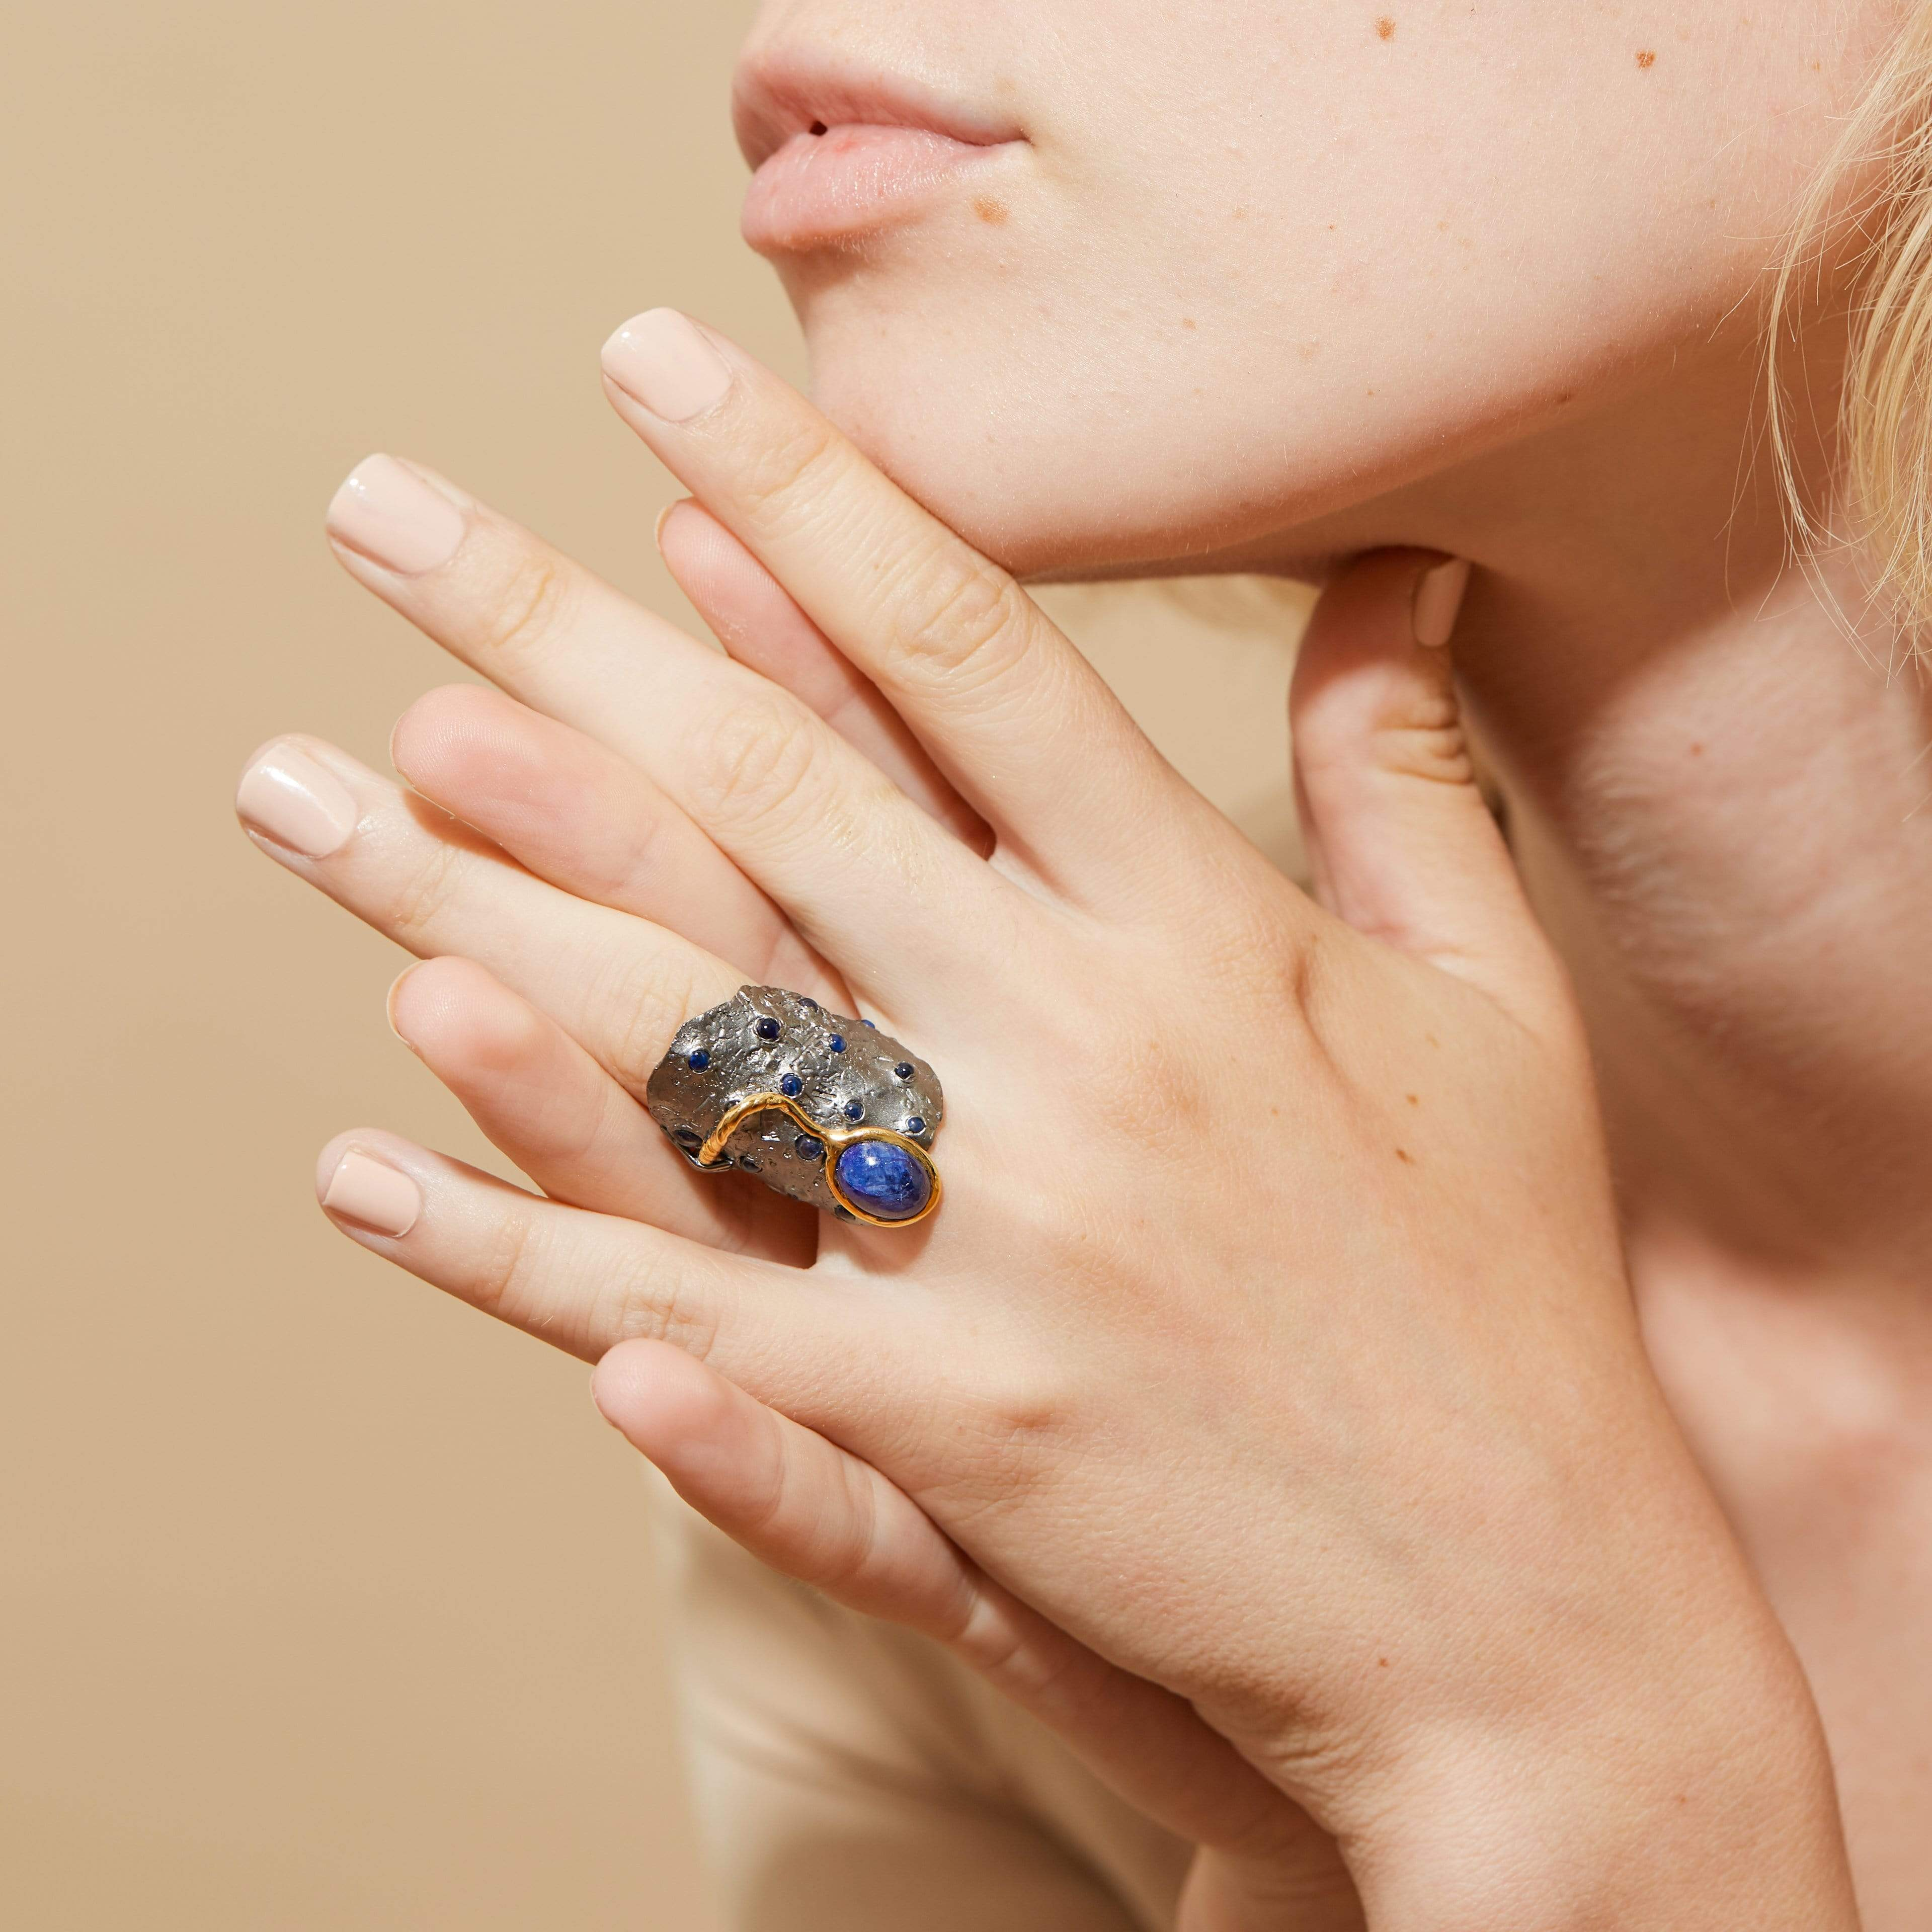 Cesia Ring, Exclusive, gray, Rhodium, Sapphire, spo-disabled, StoneColor:DeepBlue, Style:Fantasy, Type:StoneCandyScattered Ring